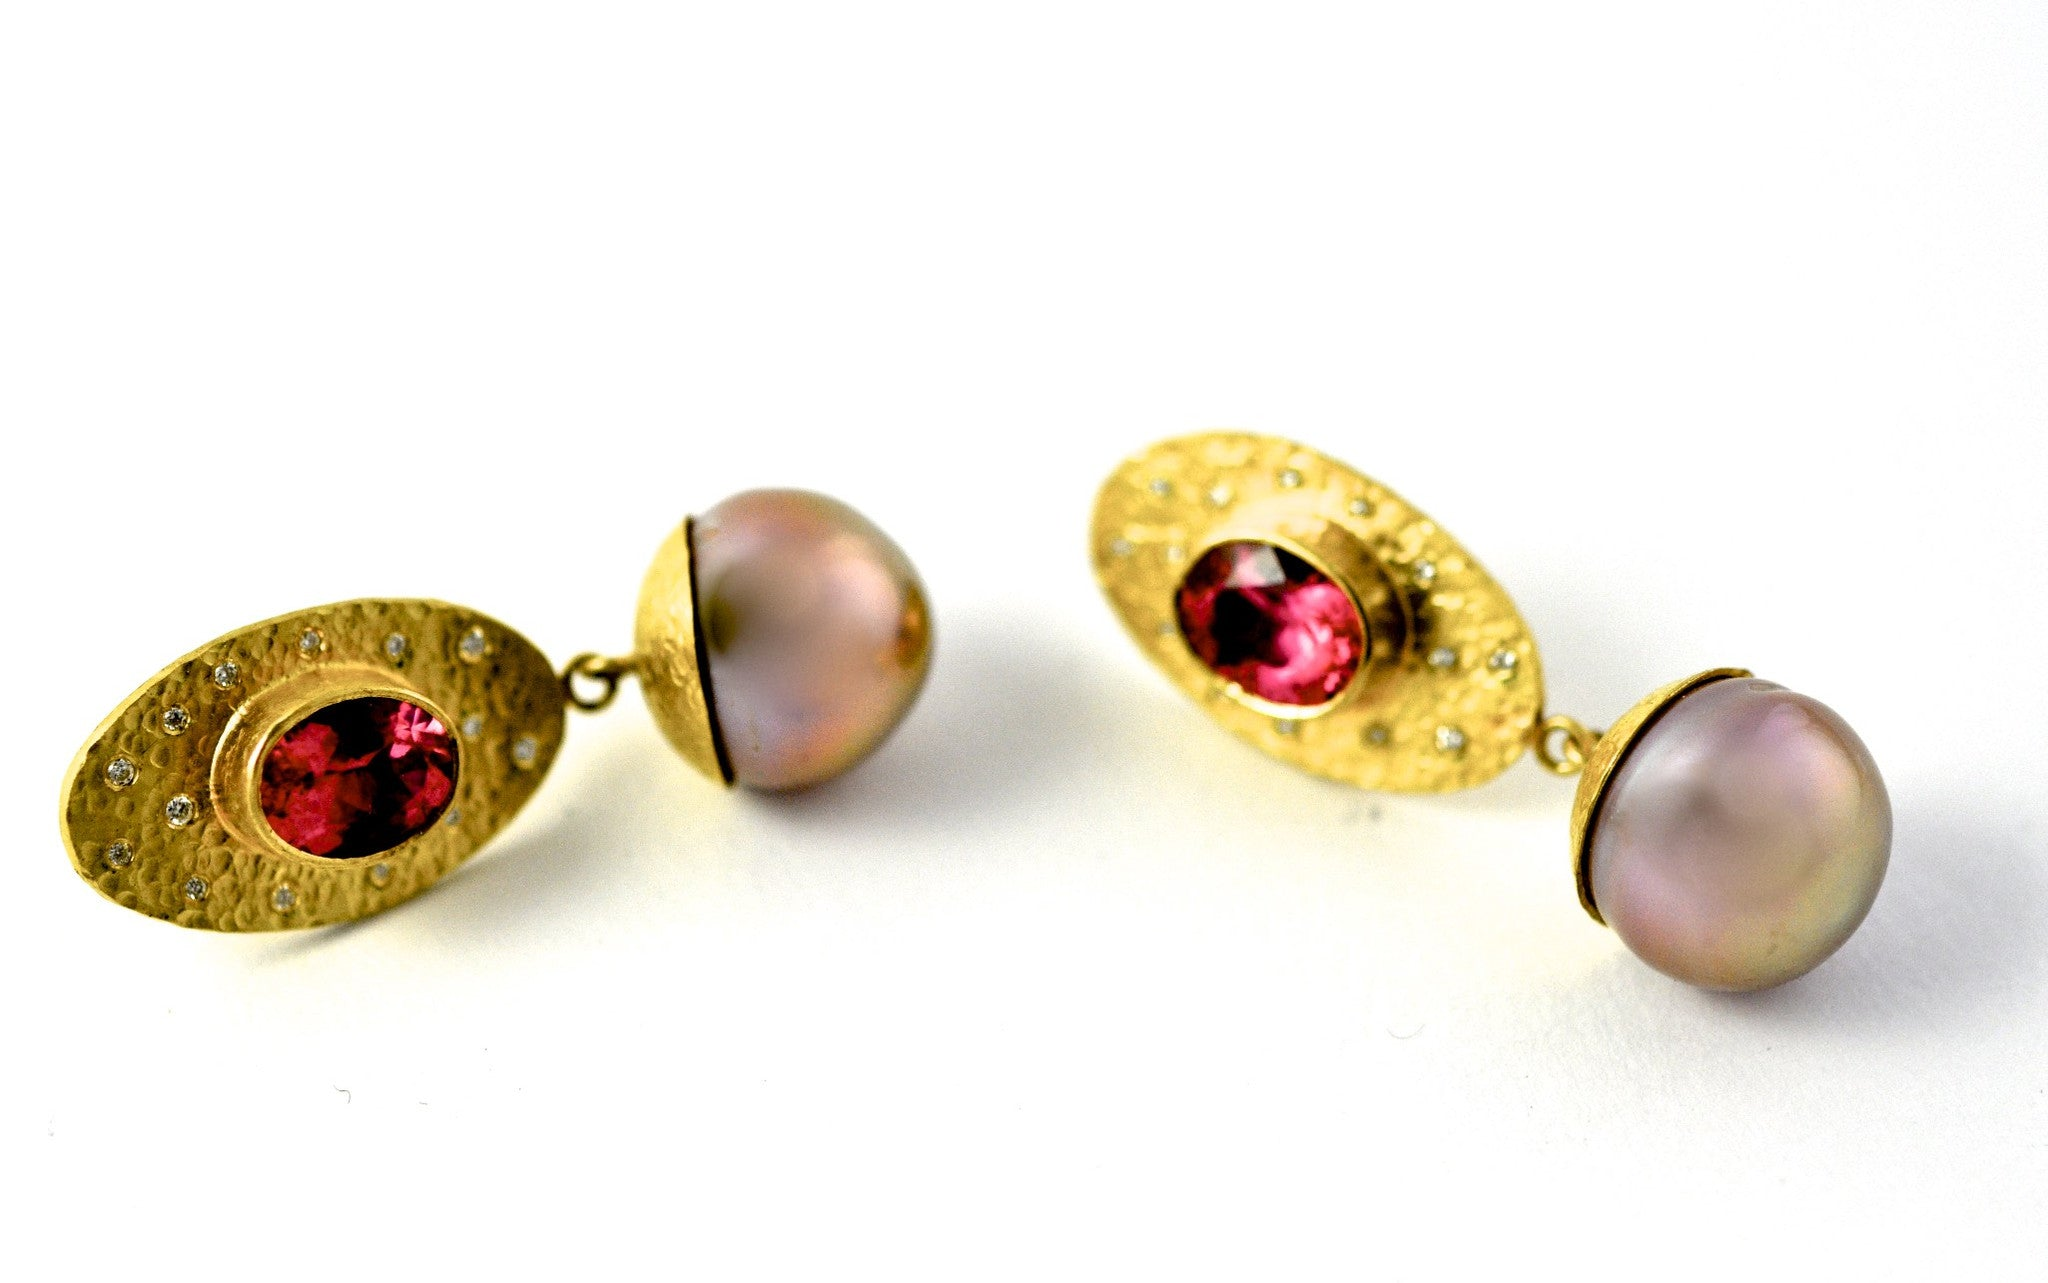 earrings / gold hammered 22k + rubelite + pearls + diamonds